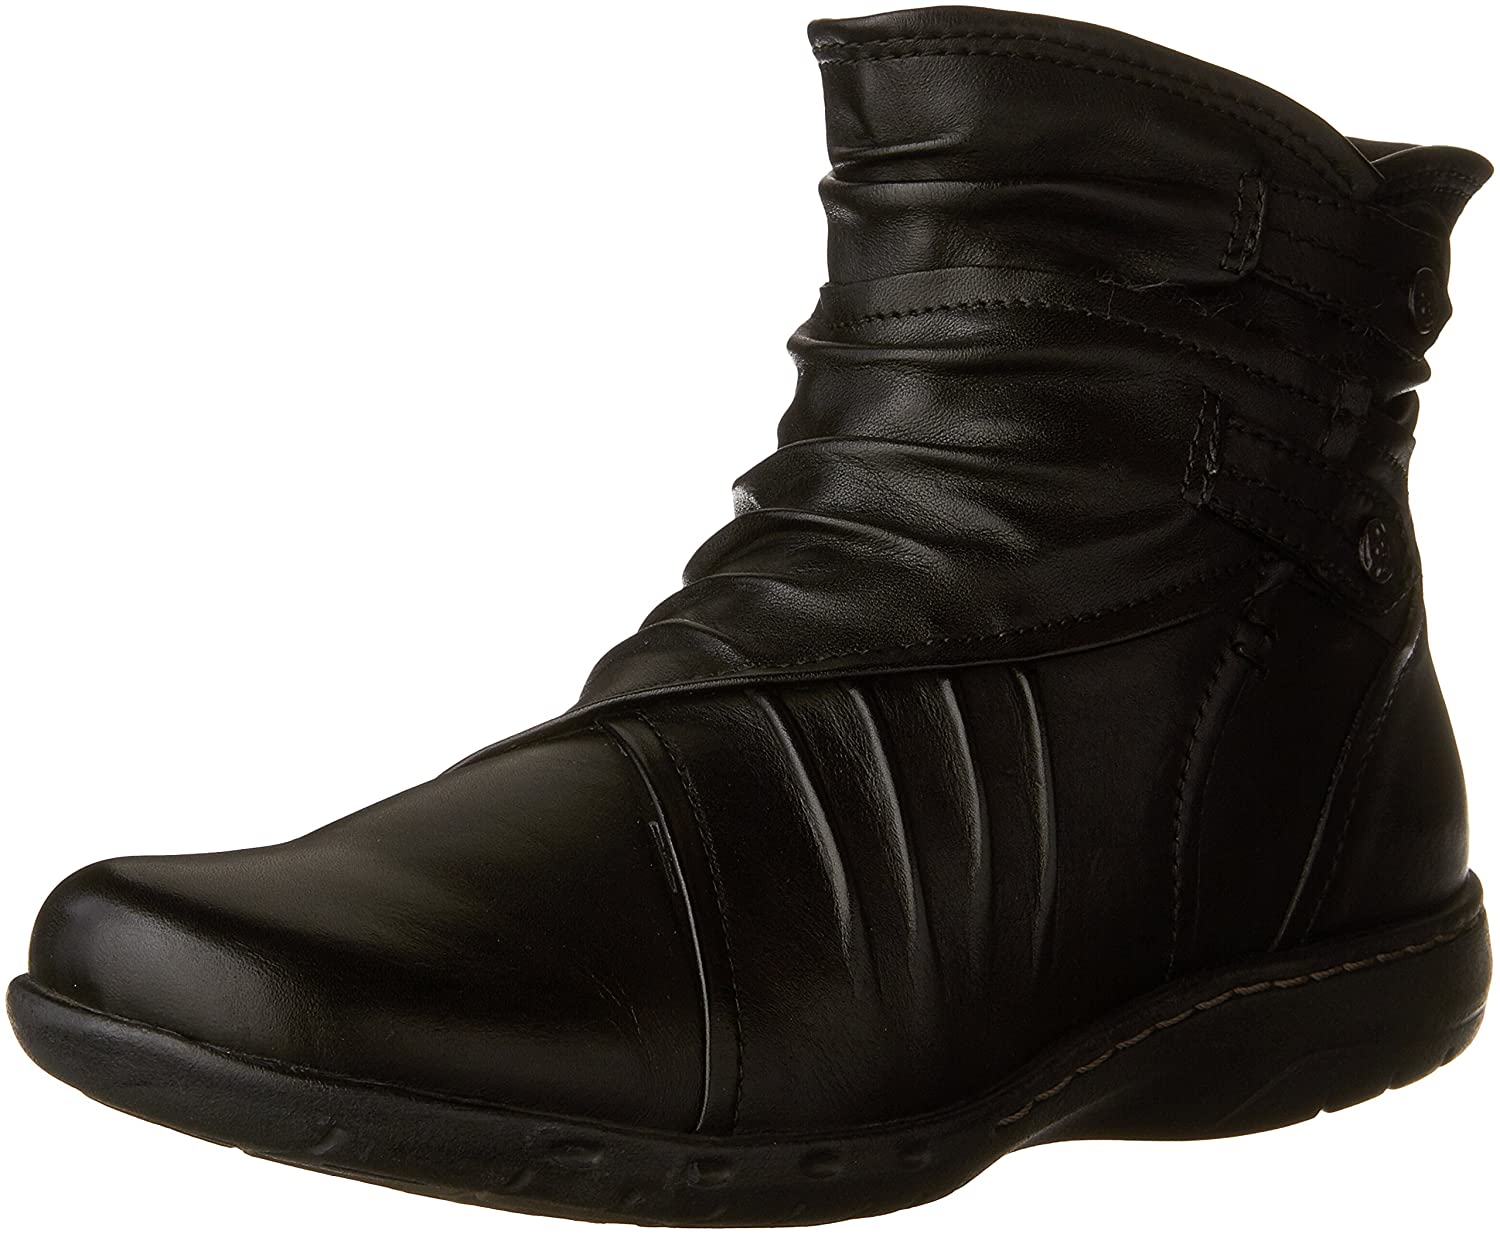 Cobb Hill Rockport Women's Pandora Boot B00B9FXS54 6.5 W US|Black